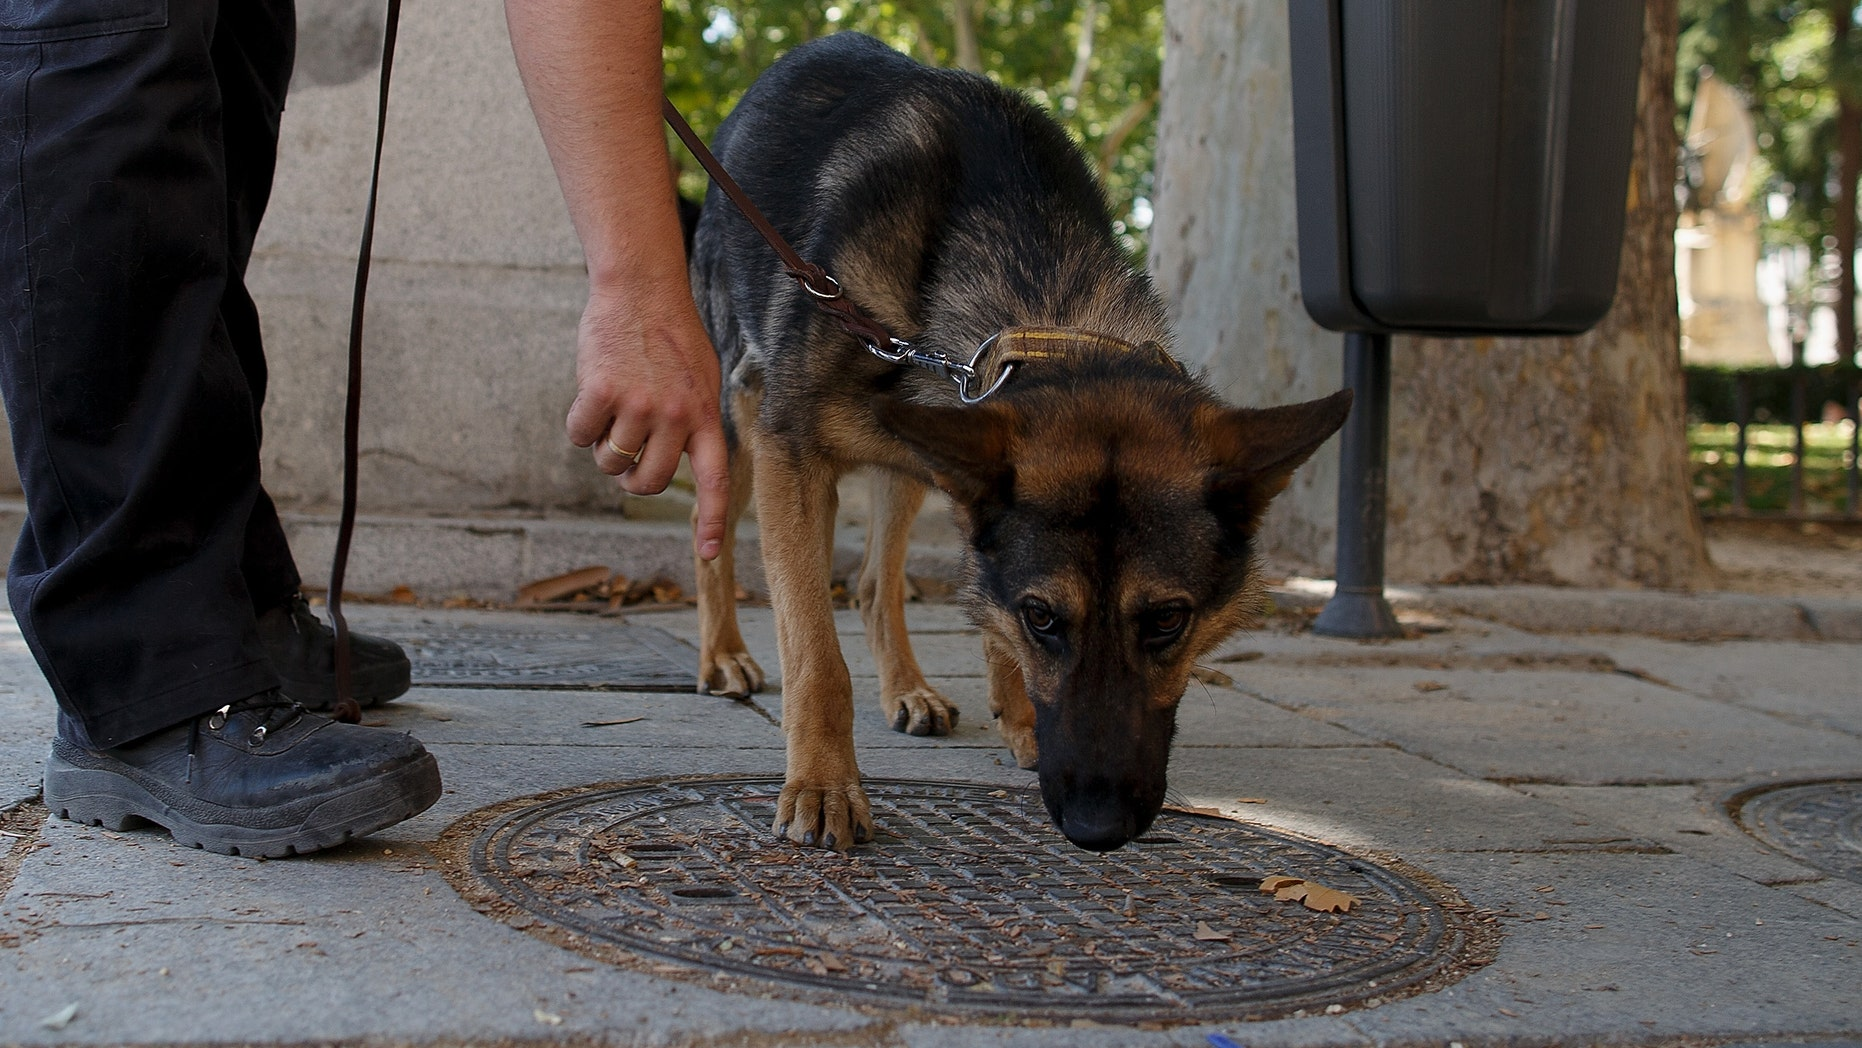 MADRID, SPAIN - JUNE 17:  A policeman working with a police dog checks a manhole cover at Plaza de Oriente near the Royal Palace on June 17, 2014 in Madrid, Spain.  Prince Felipe will be crowned Felipe VI of Spain on June 19th after his father King Juan Carlos abdicated on June 2.  (Photo by Pablo Blazquez Dominguez/Getty Images)